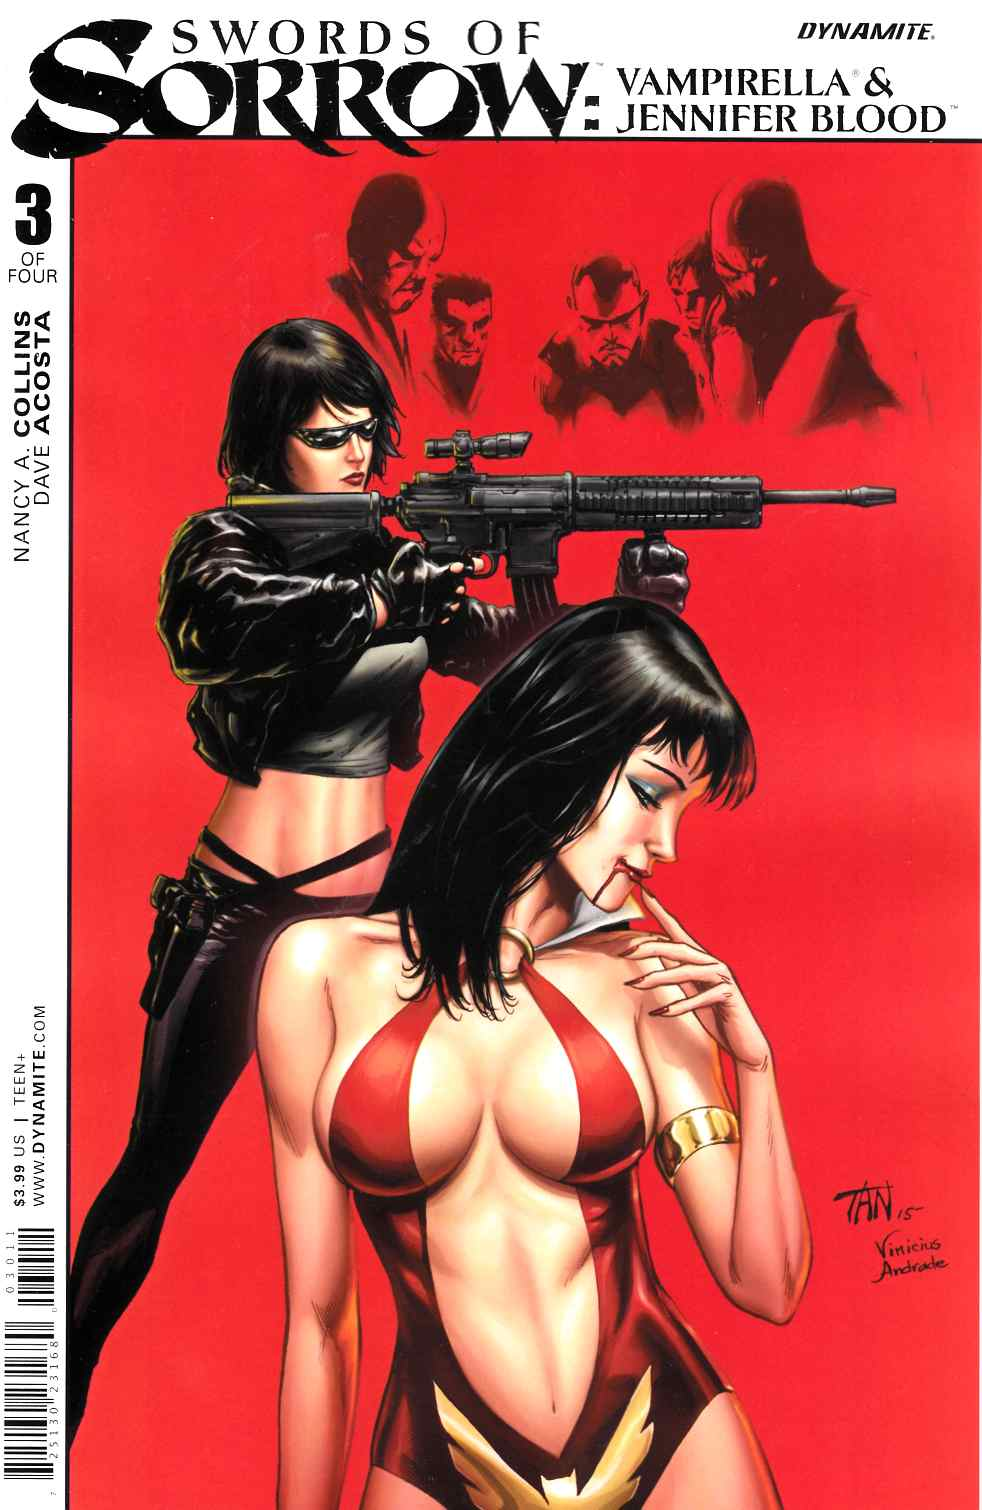 Swords of Sorrow Vampirella Jennifer Blood #3 [Dynamite Comic]